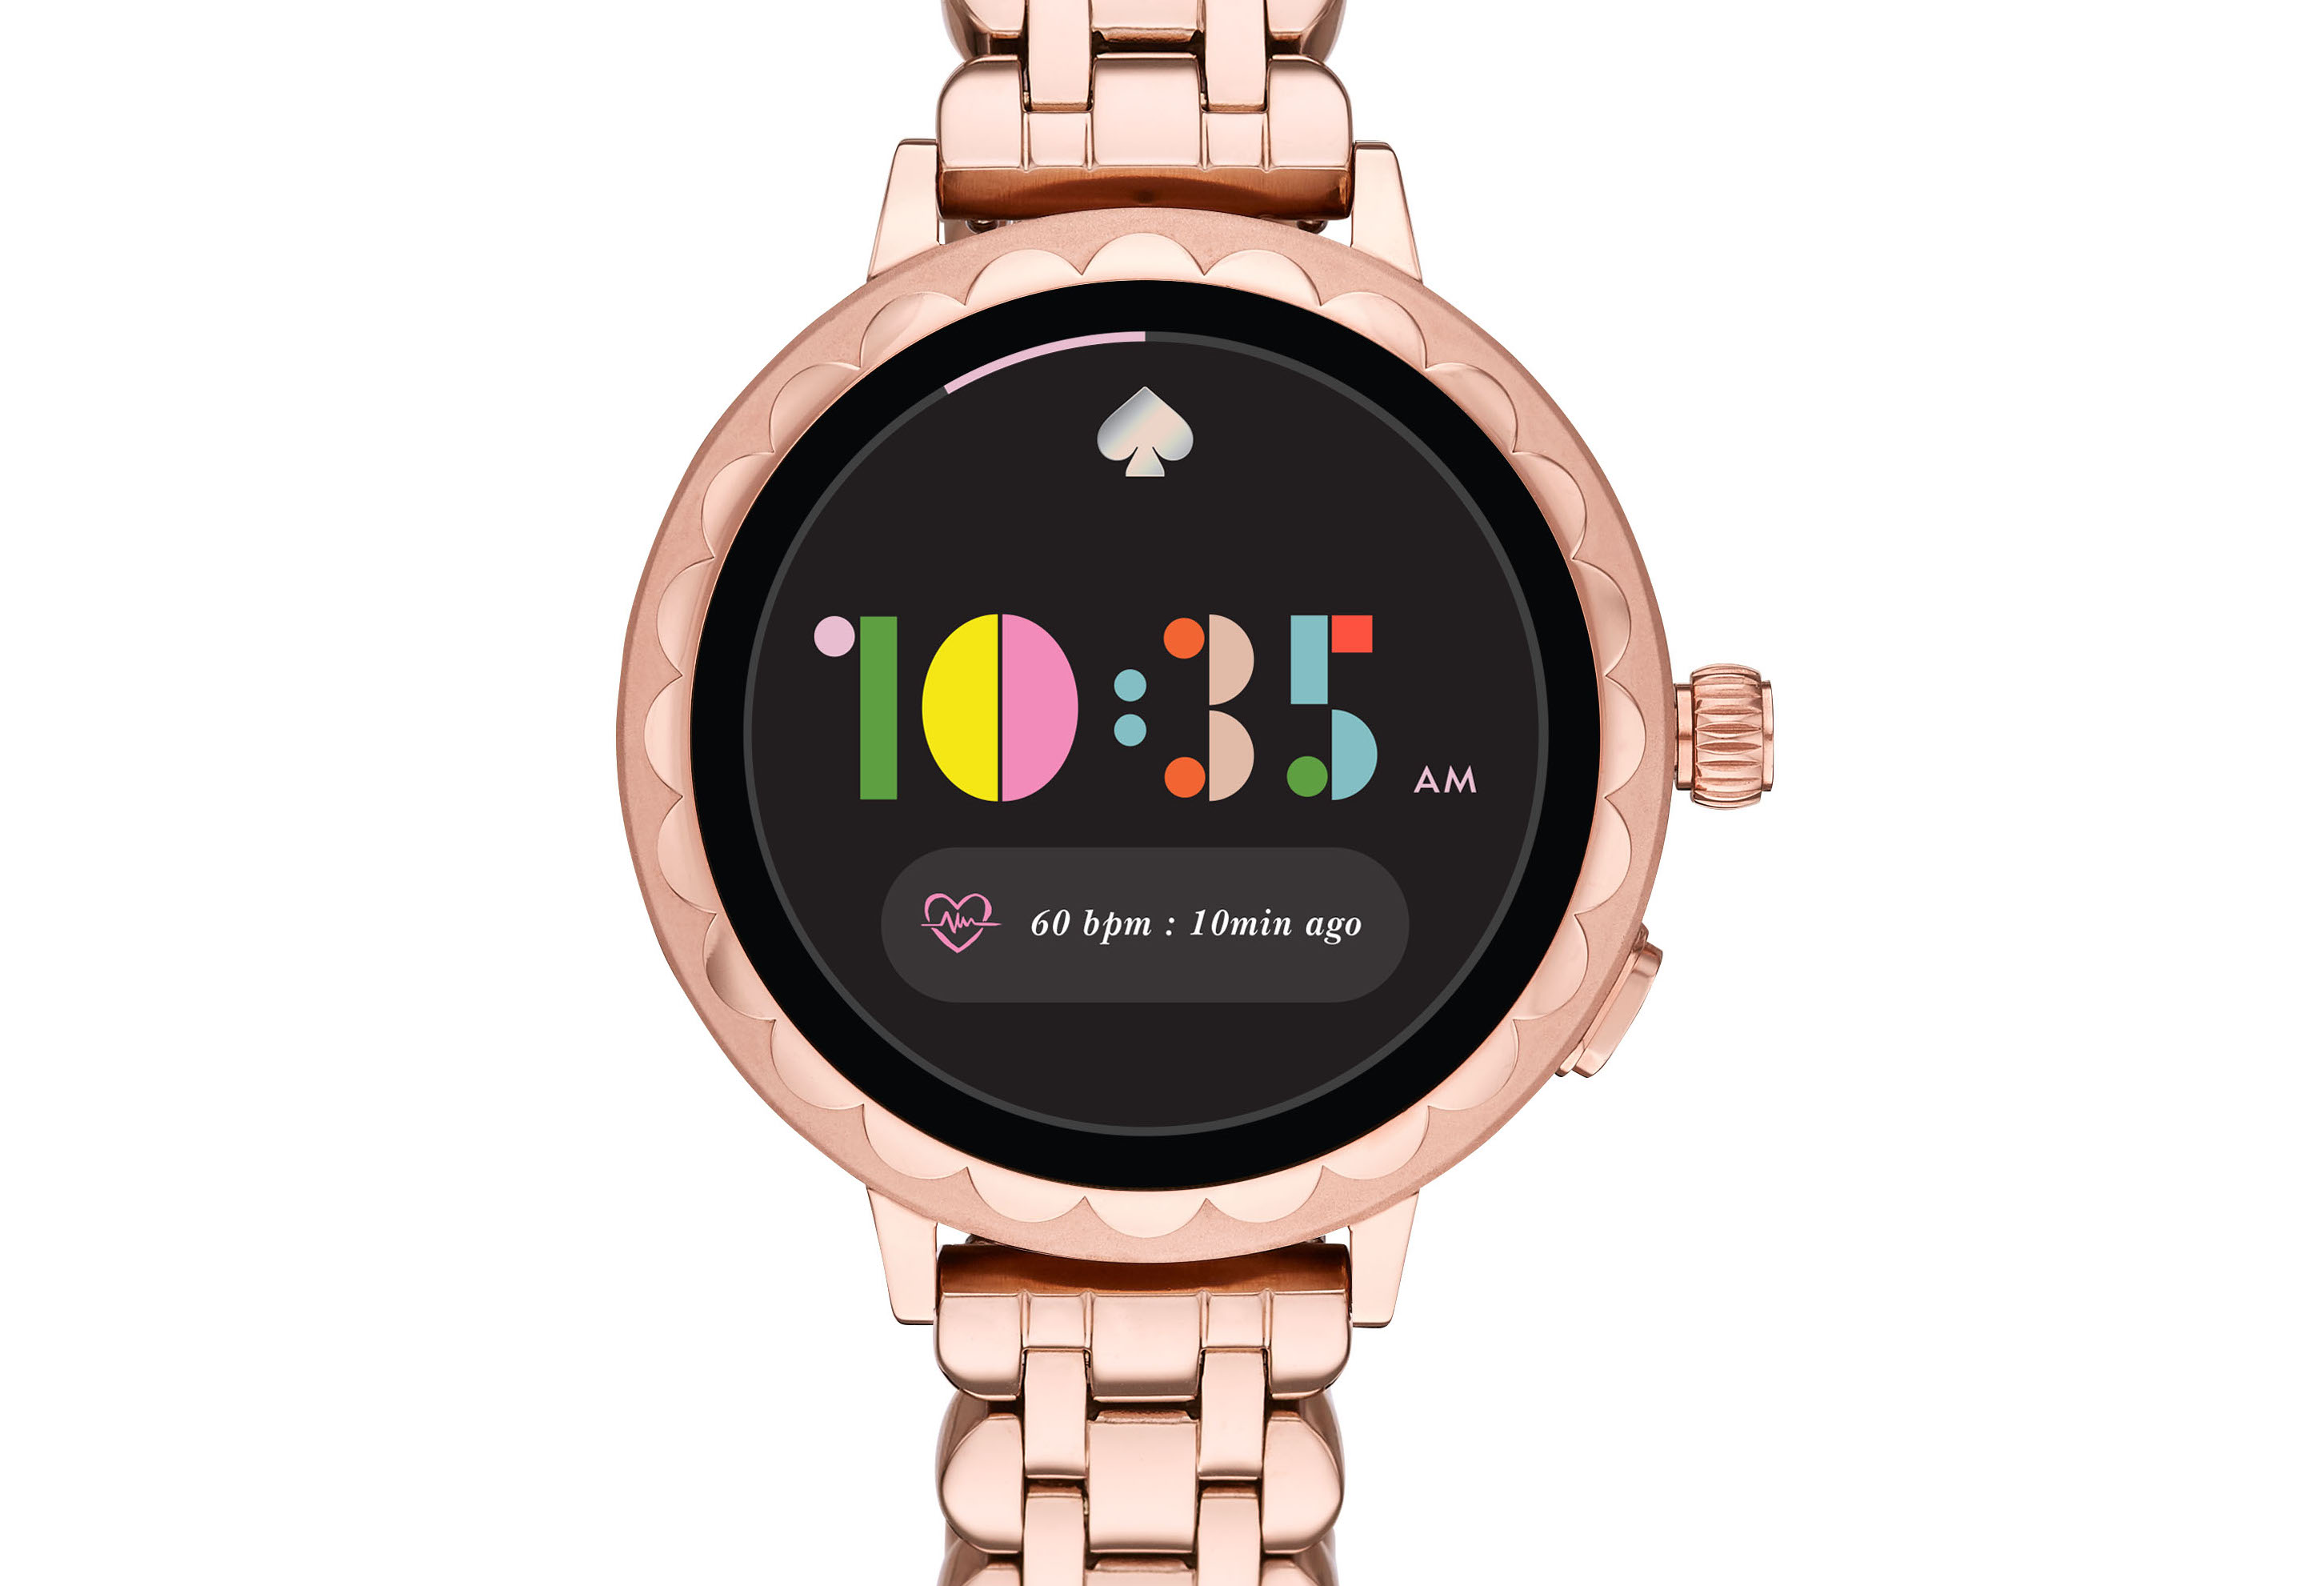 The new scallop smartwatch 2 from kate spade